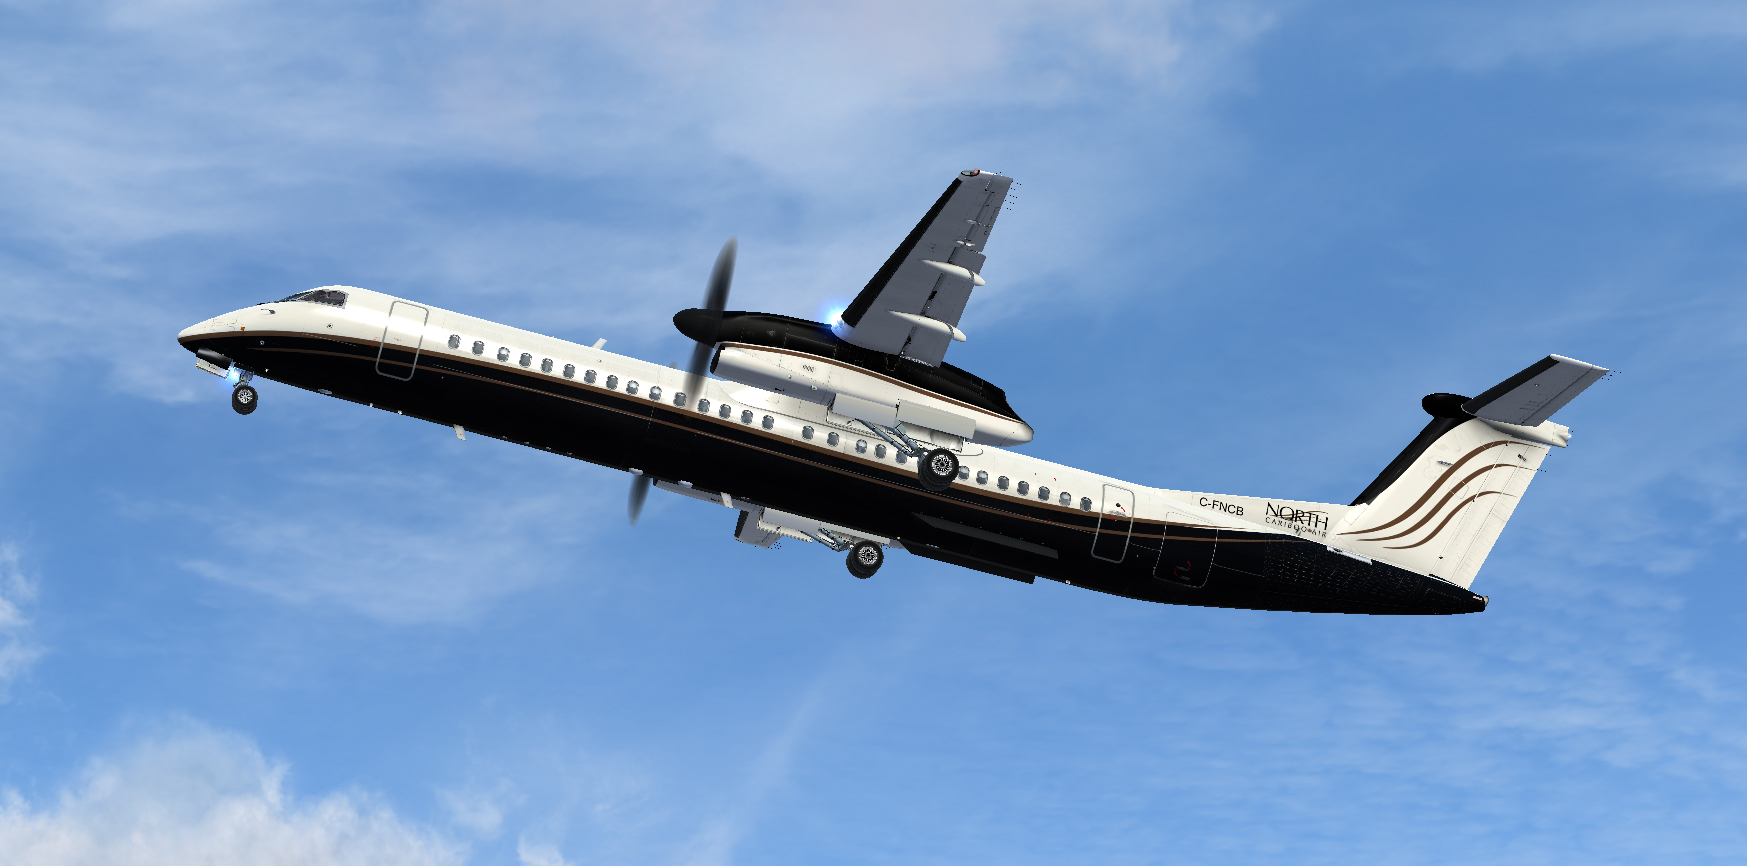 Product Name : Majestic Q400 North Cariboo Air Product ID